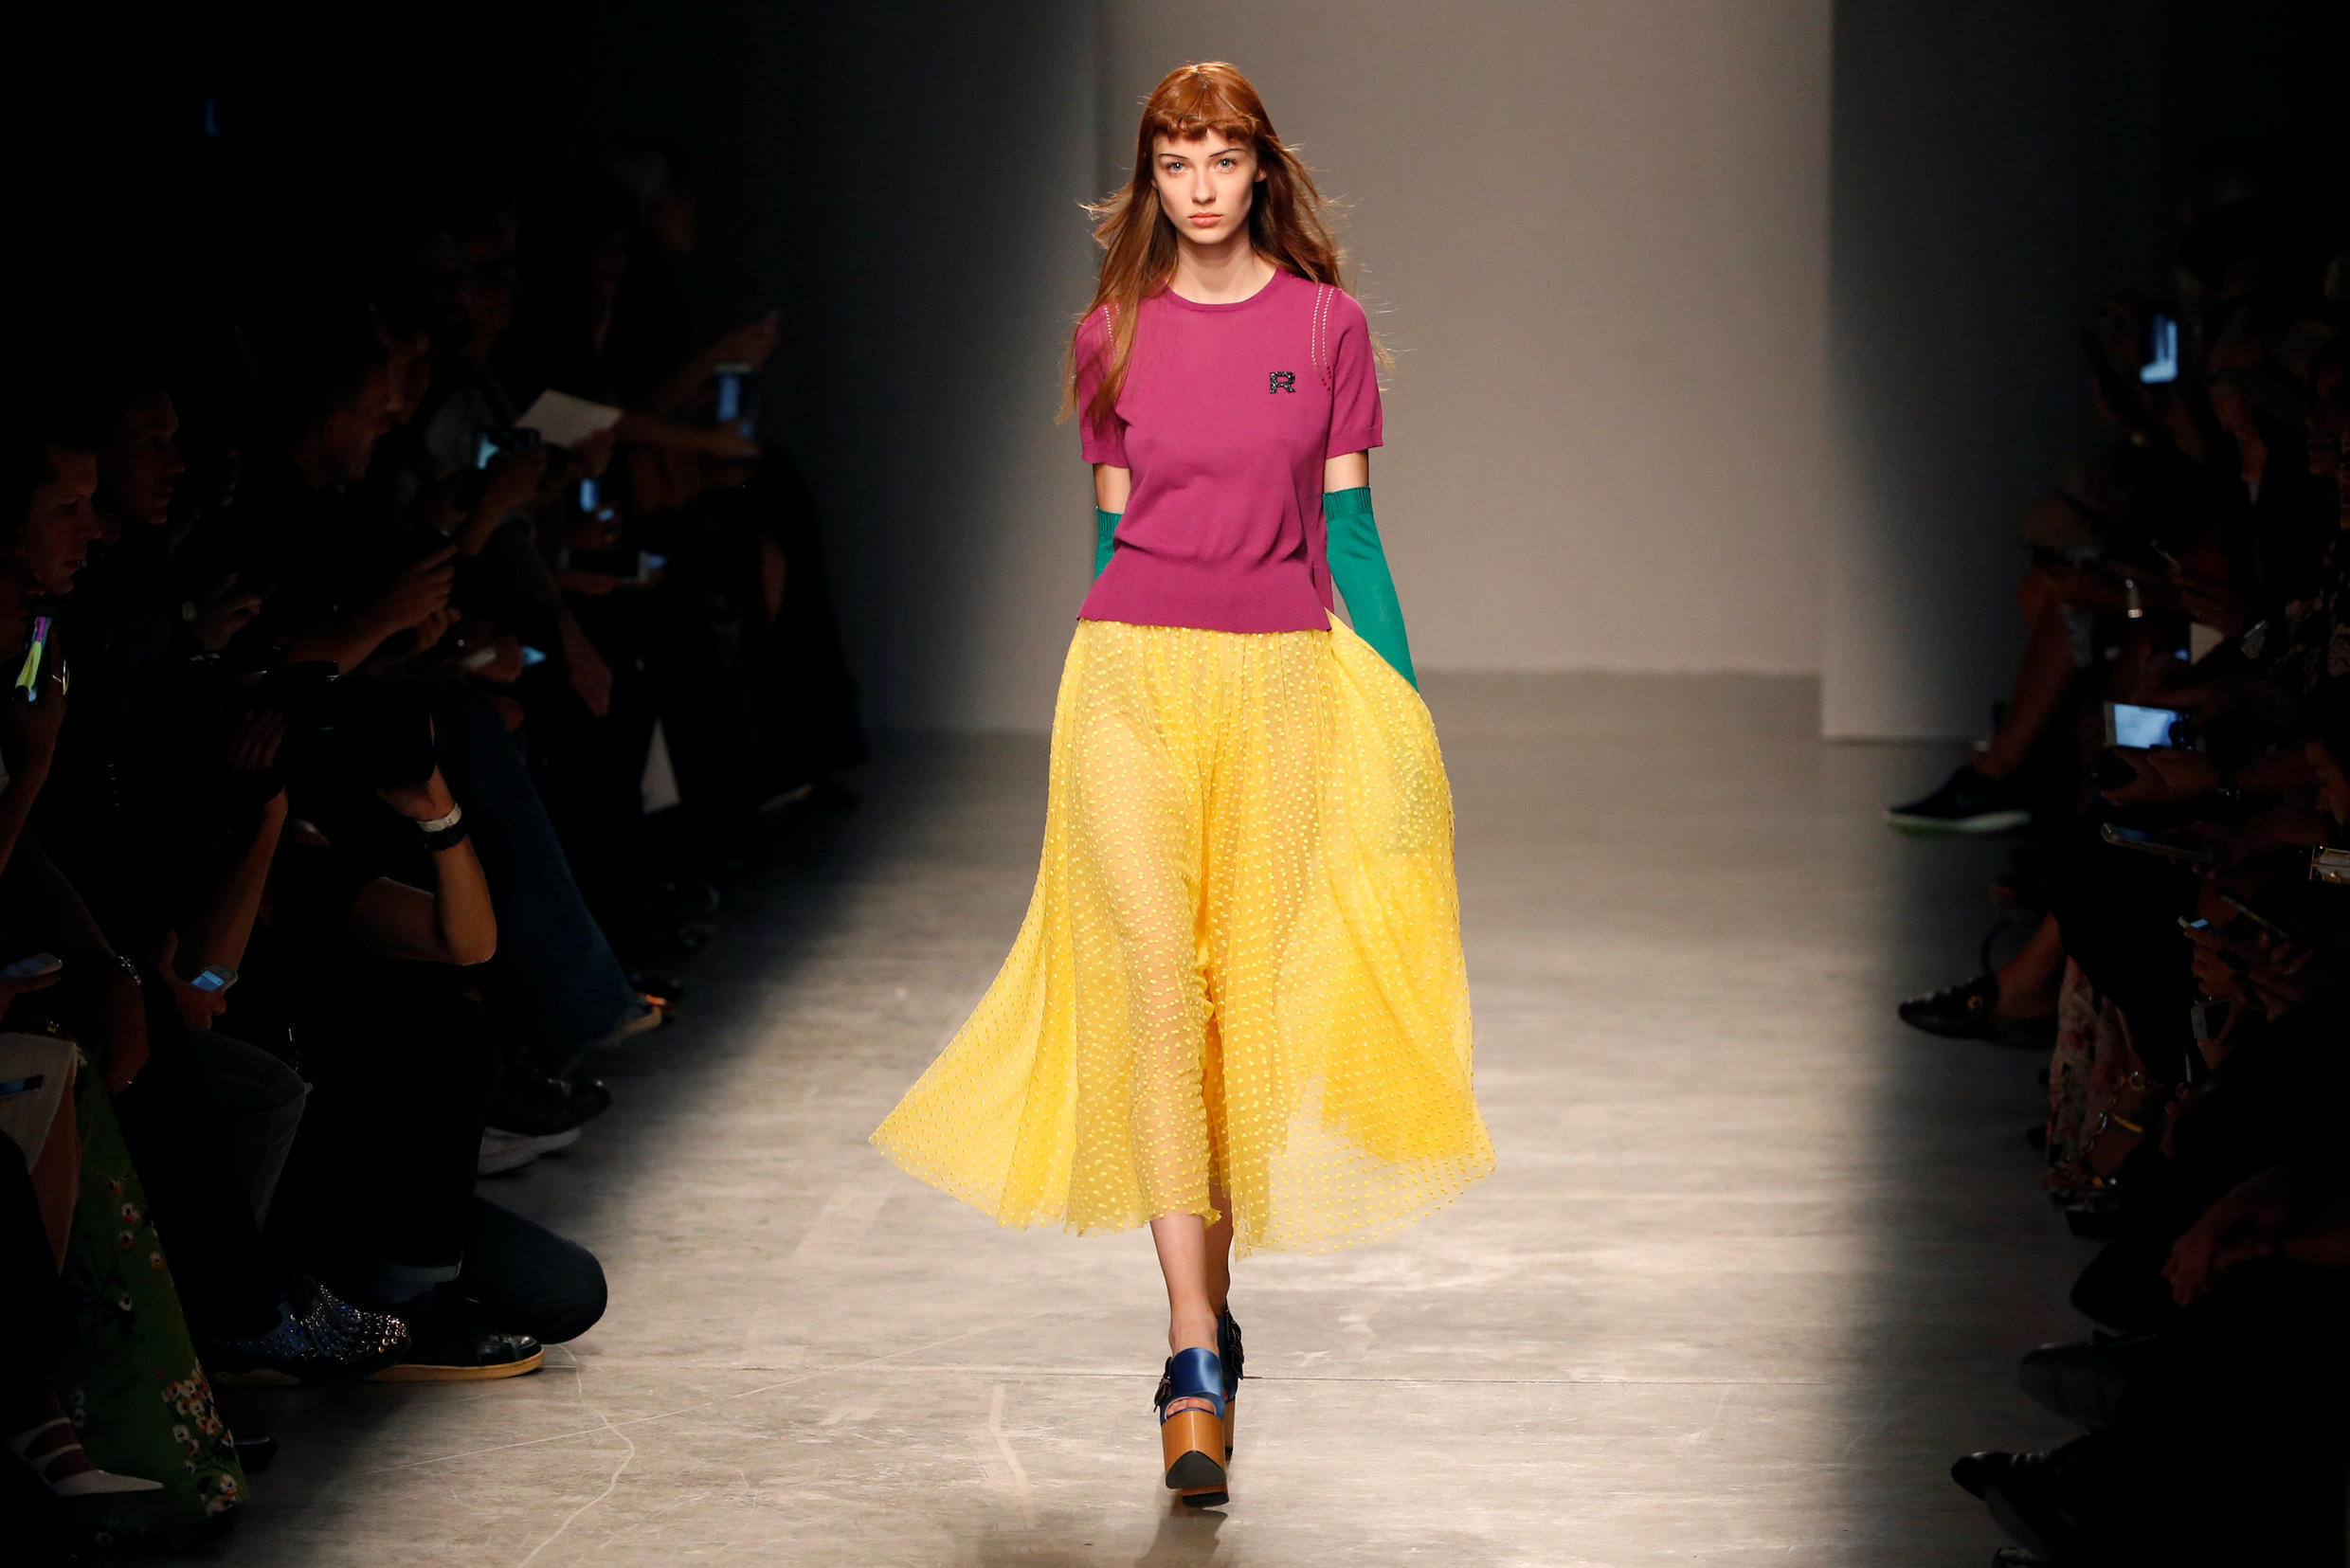 A model presents a creation by Italian designer Alessandro Dell'Acqua for fashion house Rochas as part of the Spring/Summer 2017 women's ready-to-wear collection during Fashion Week in Paris, France, September 28, 2016.